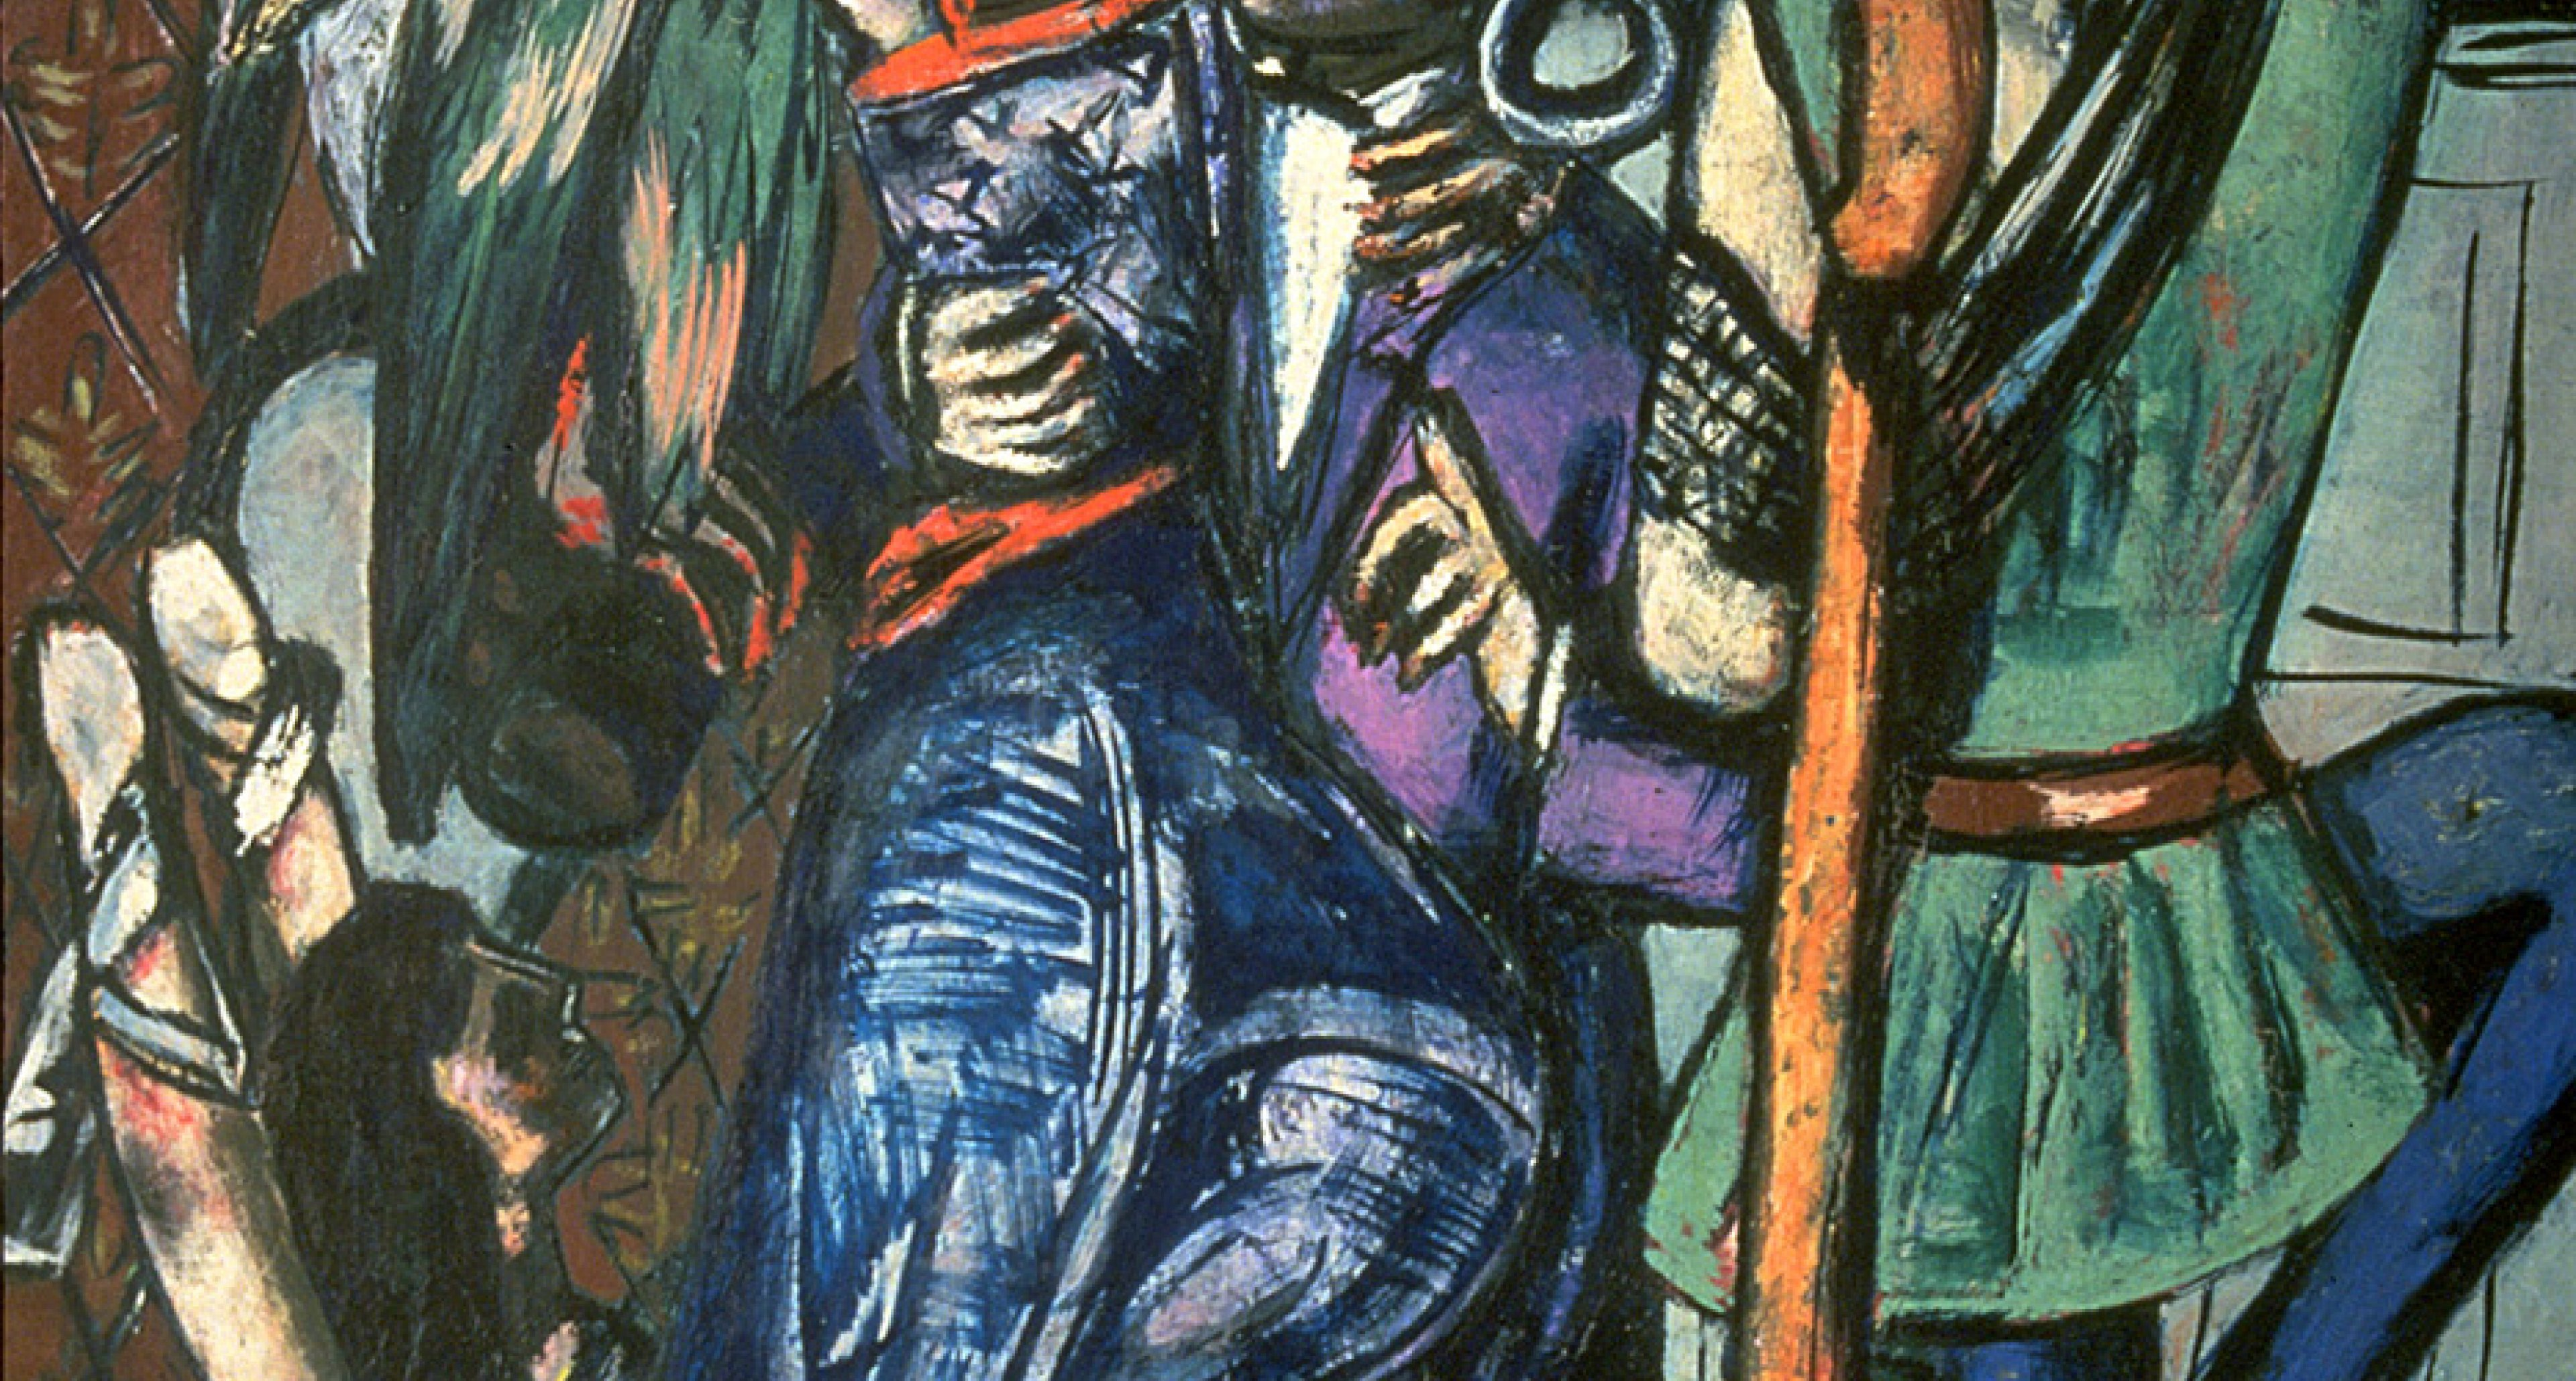 Max Beckmann, Begin the Beguine, 1946